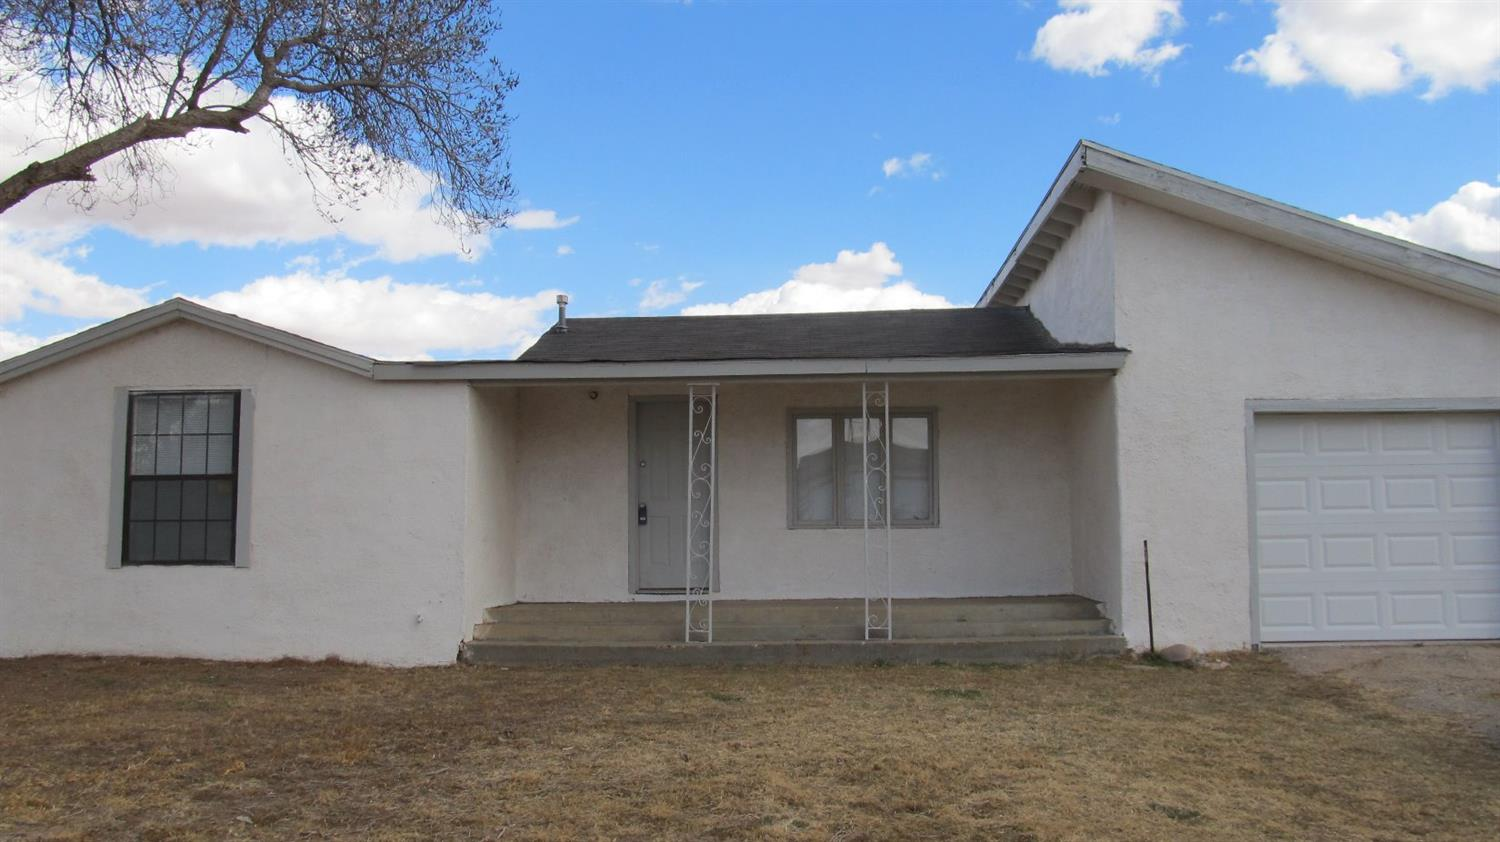 Cute, investment or starter home. New interior paint,ceiling fans, garage door and opener, newer windows. Property is being sold AS-IS  Owner is a licensed REALTOR